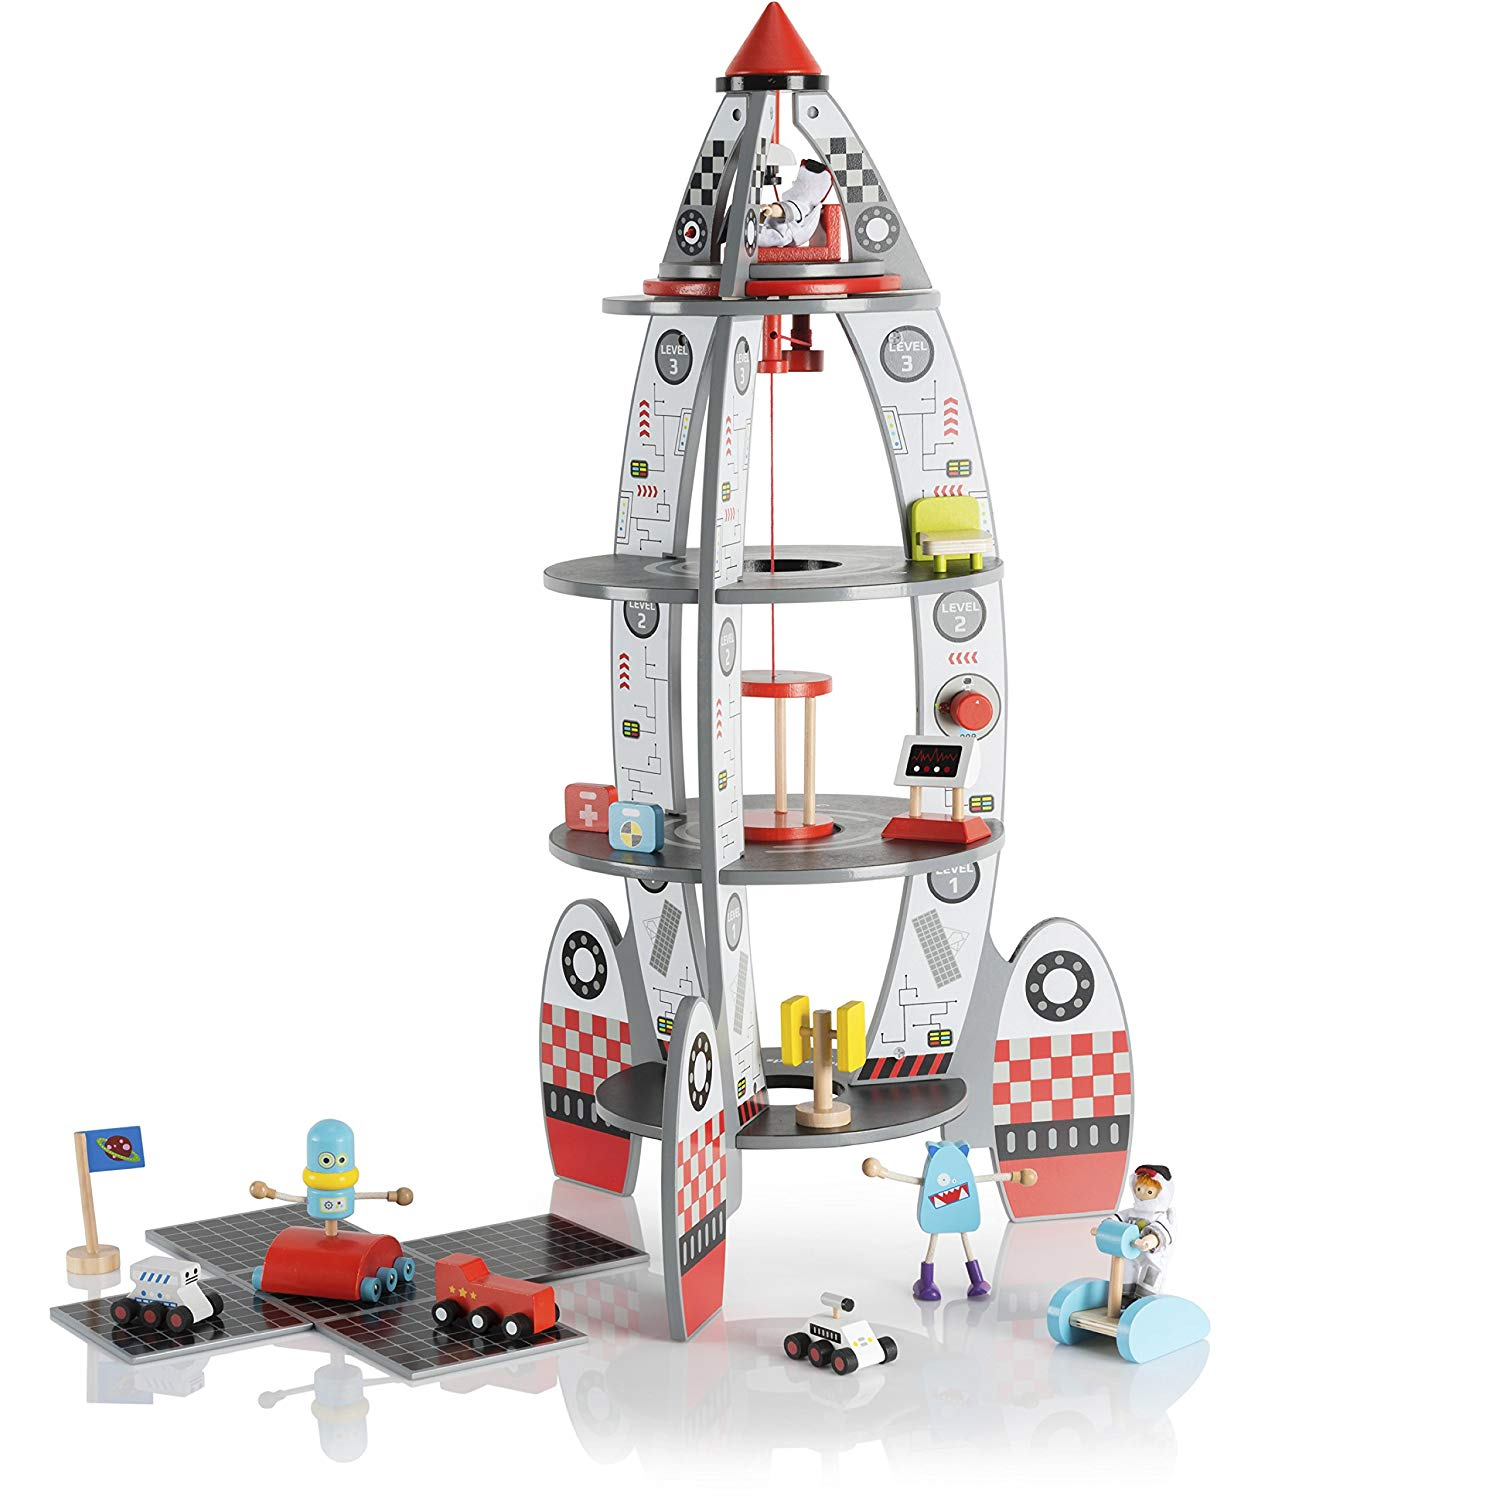 Pidoko Kids Space Ship Rocket Center Includes Astronauts and Accessories Wooden Doll House Station Playset... by